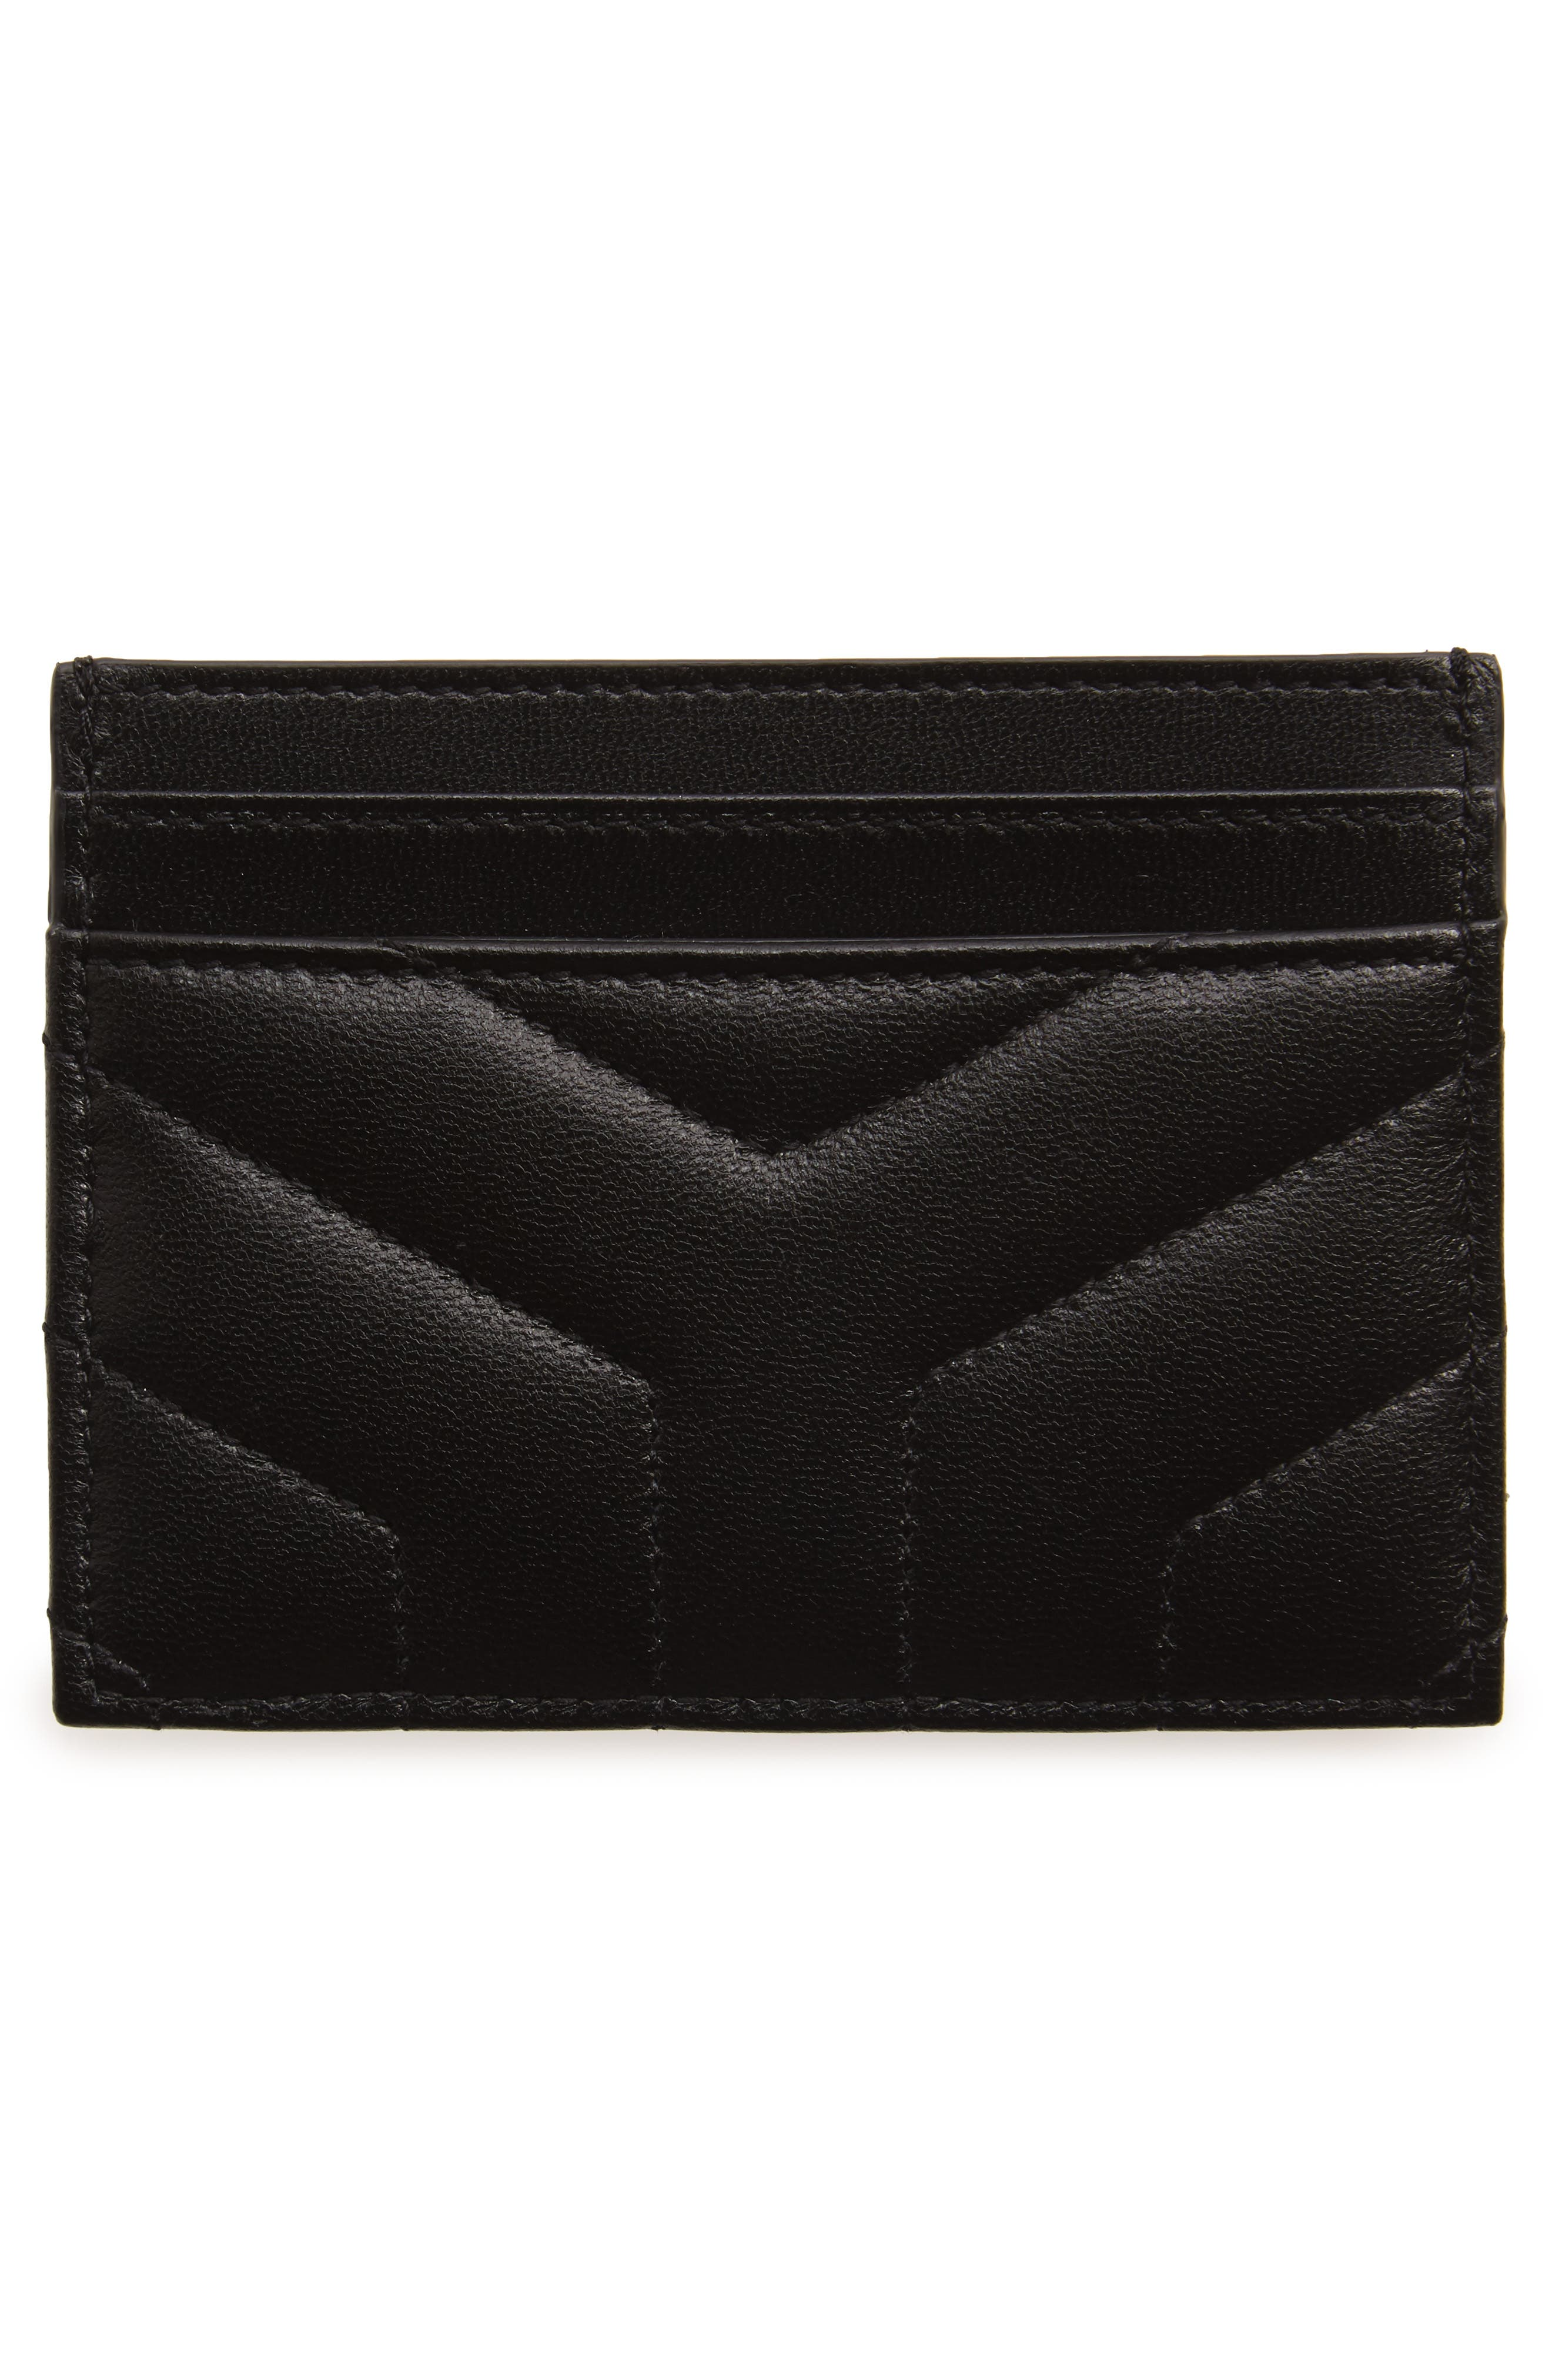 Loulou Monogram Quilted Leather Credit Card Case,                             Alternate thumbnail 2, color,                             NOIR